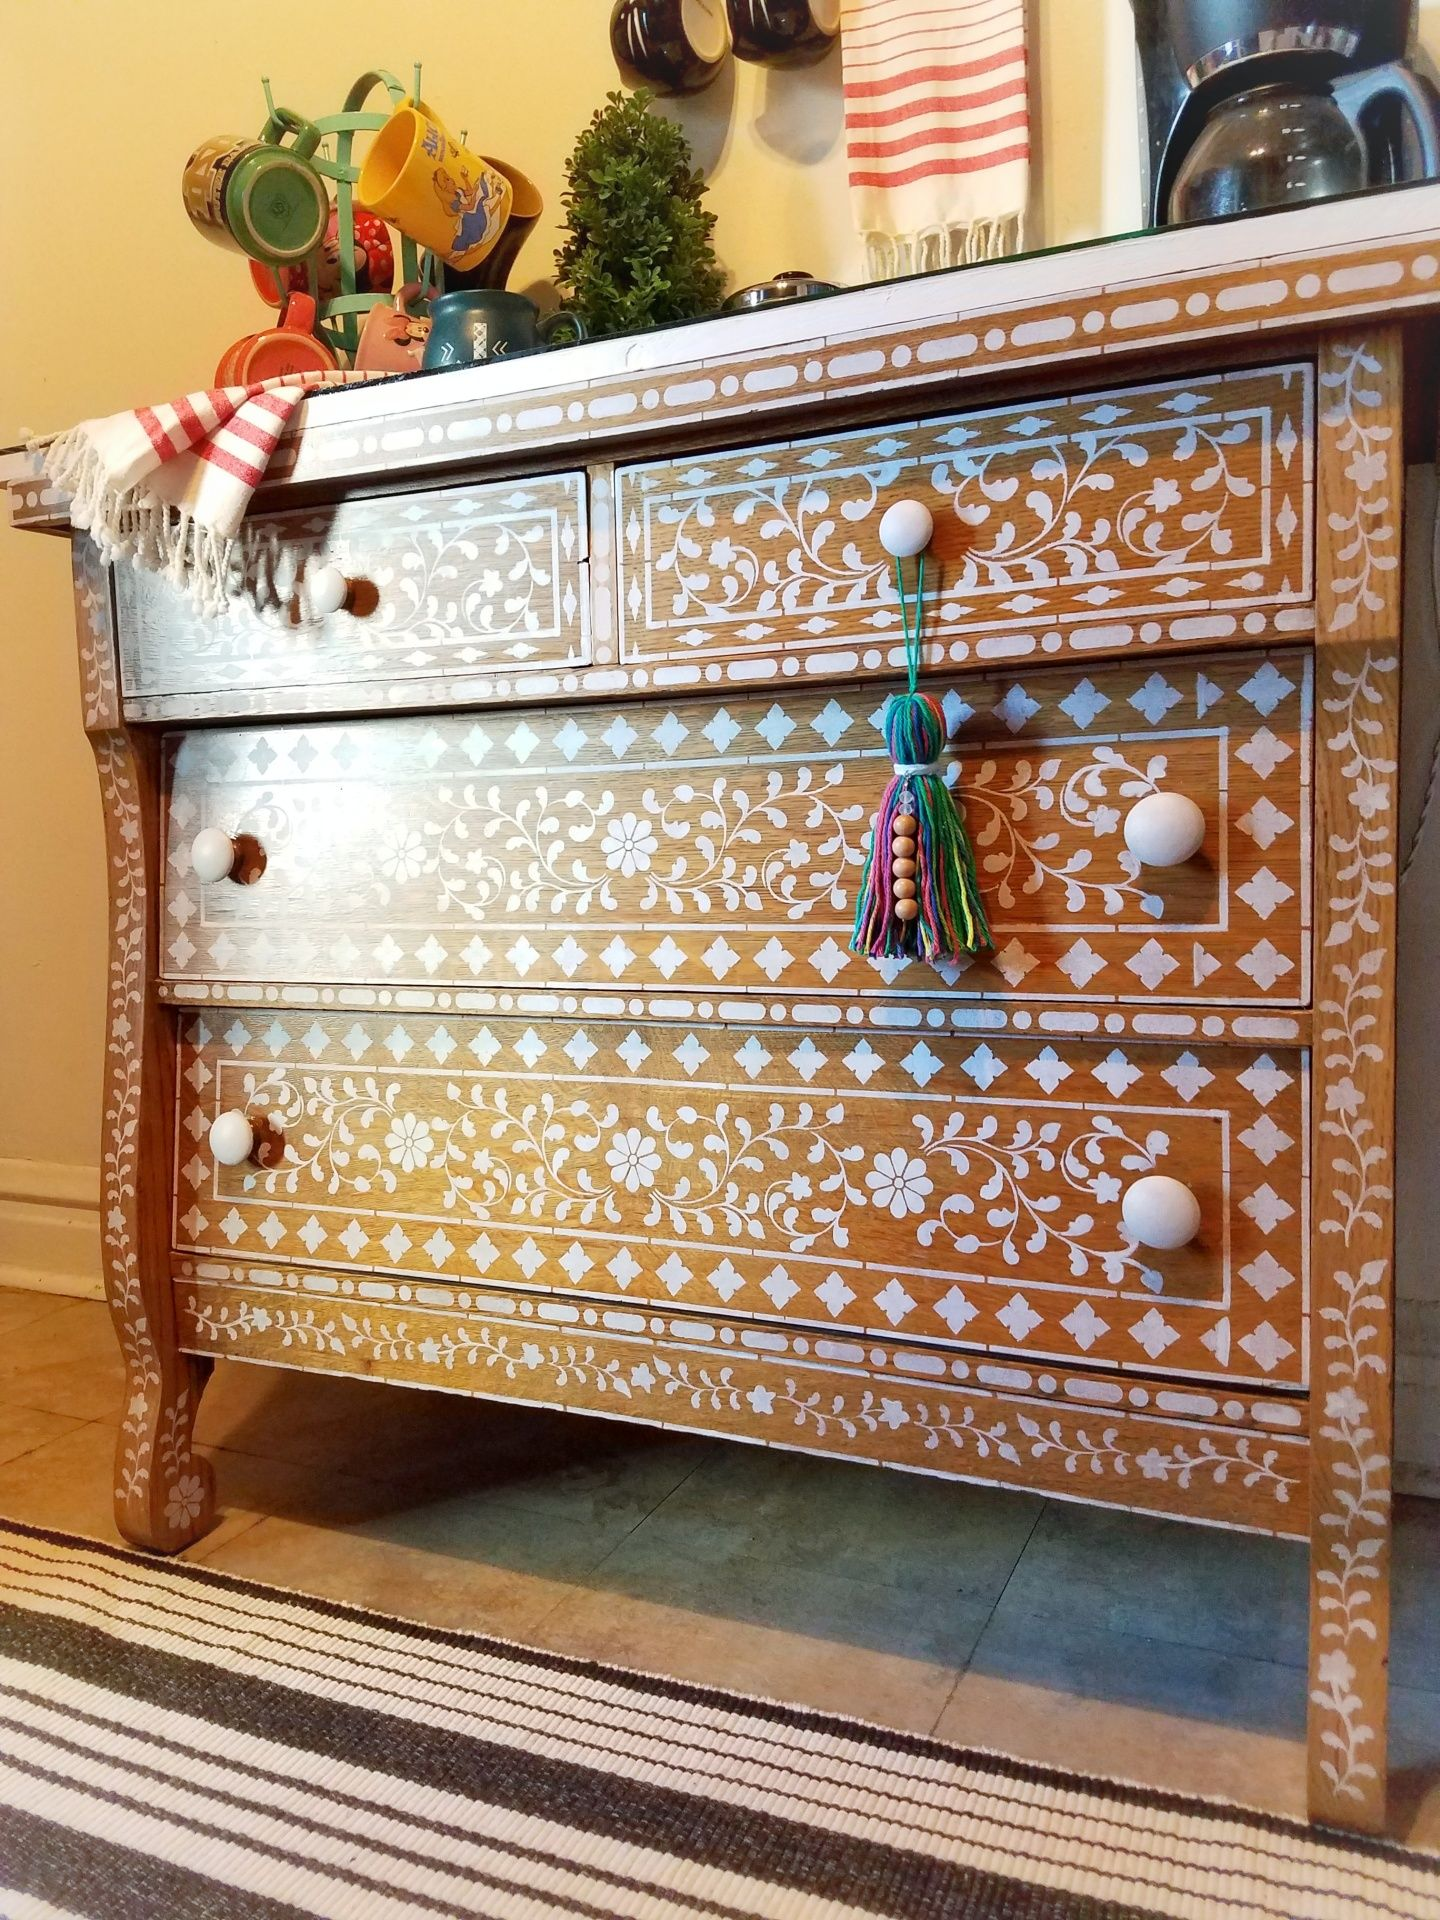 A Diy Bone Inlay Stenciled Dresser Using The Indian Inlay